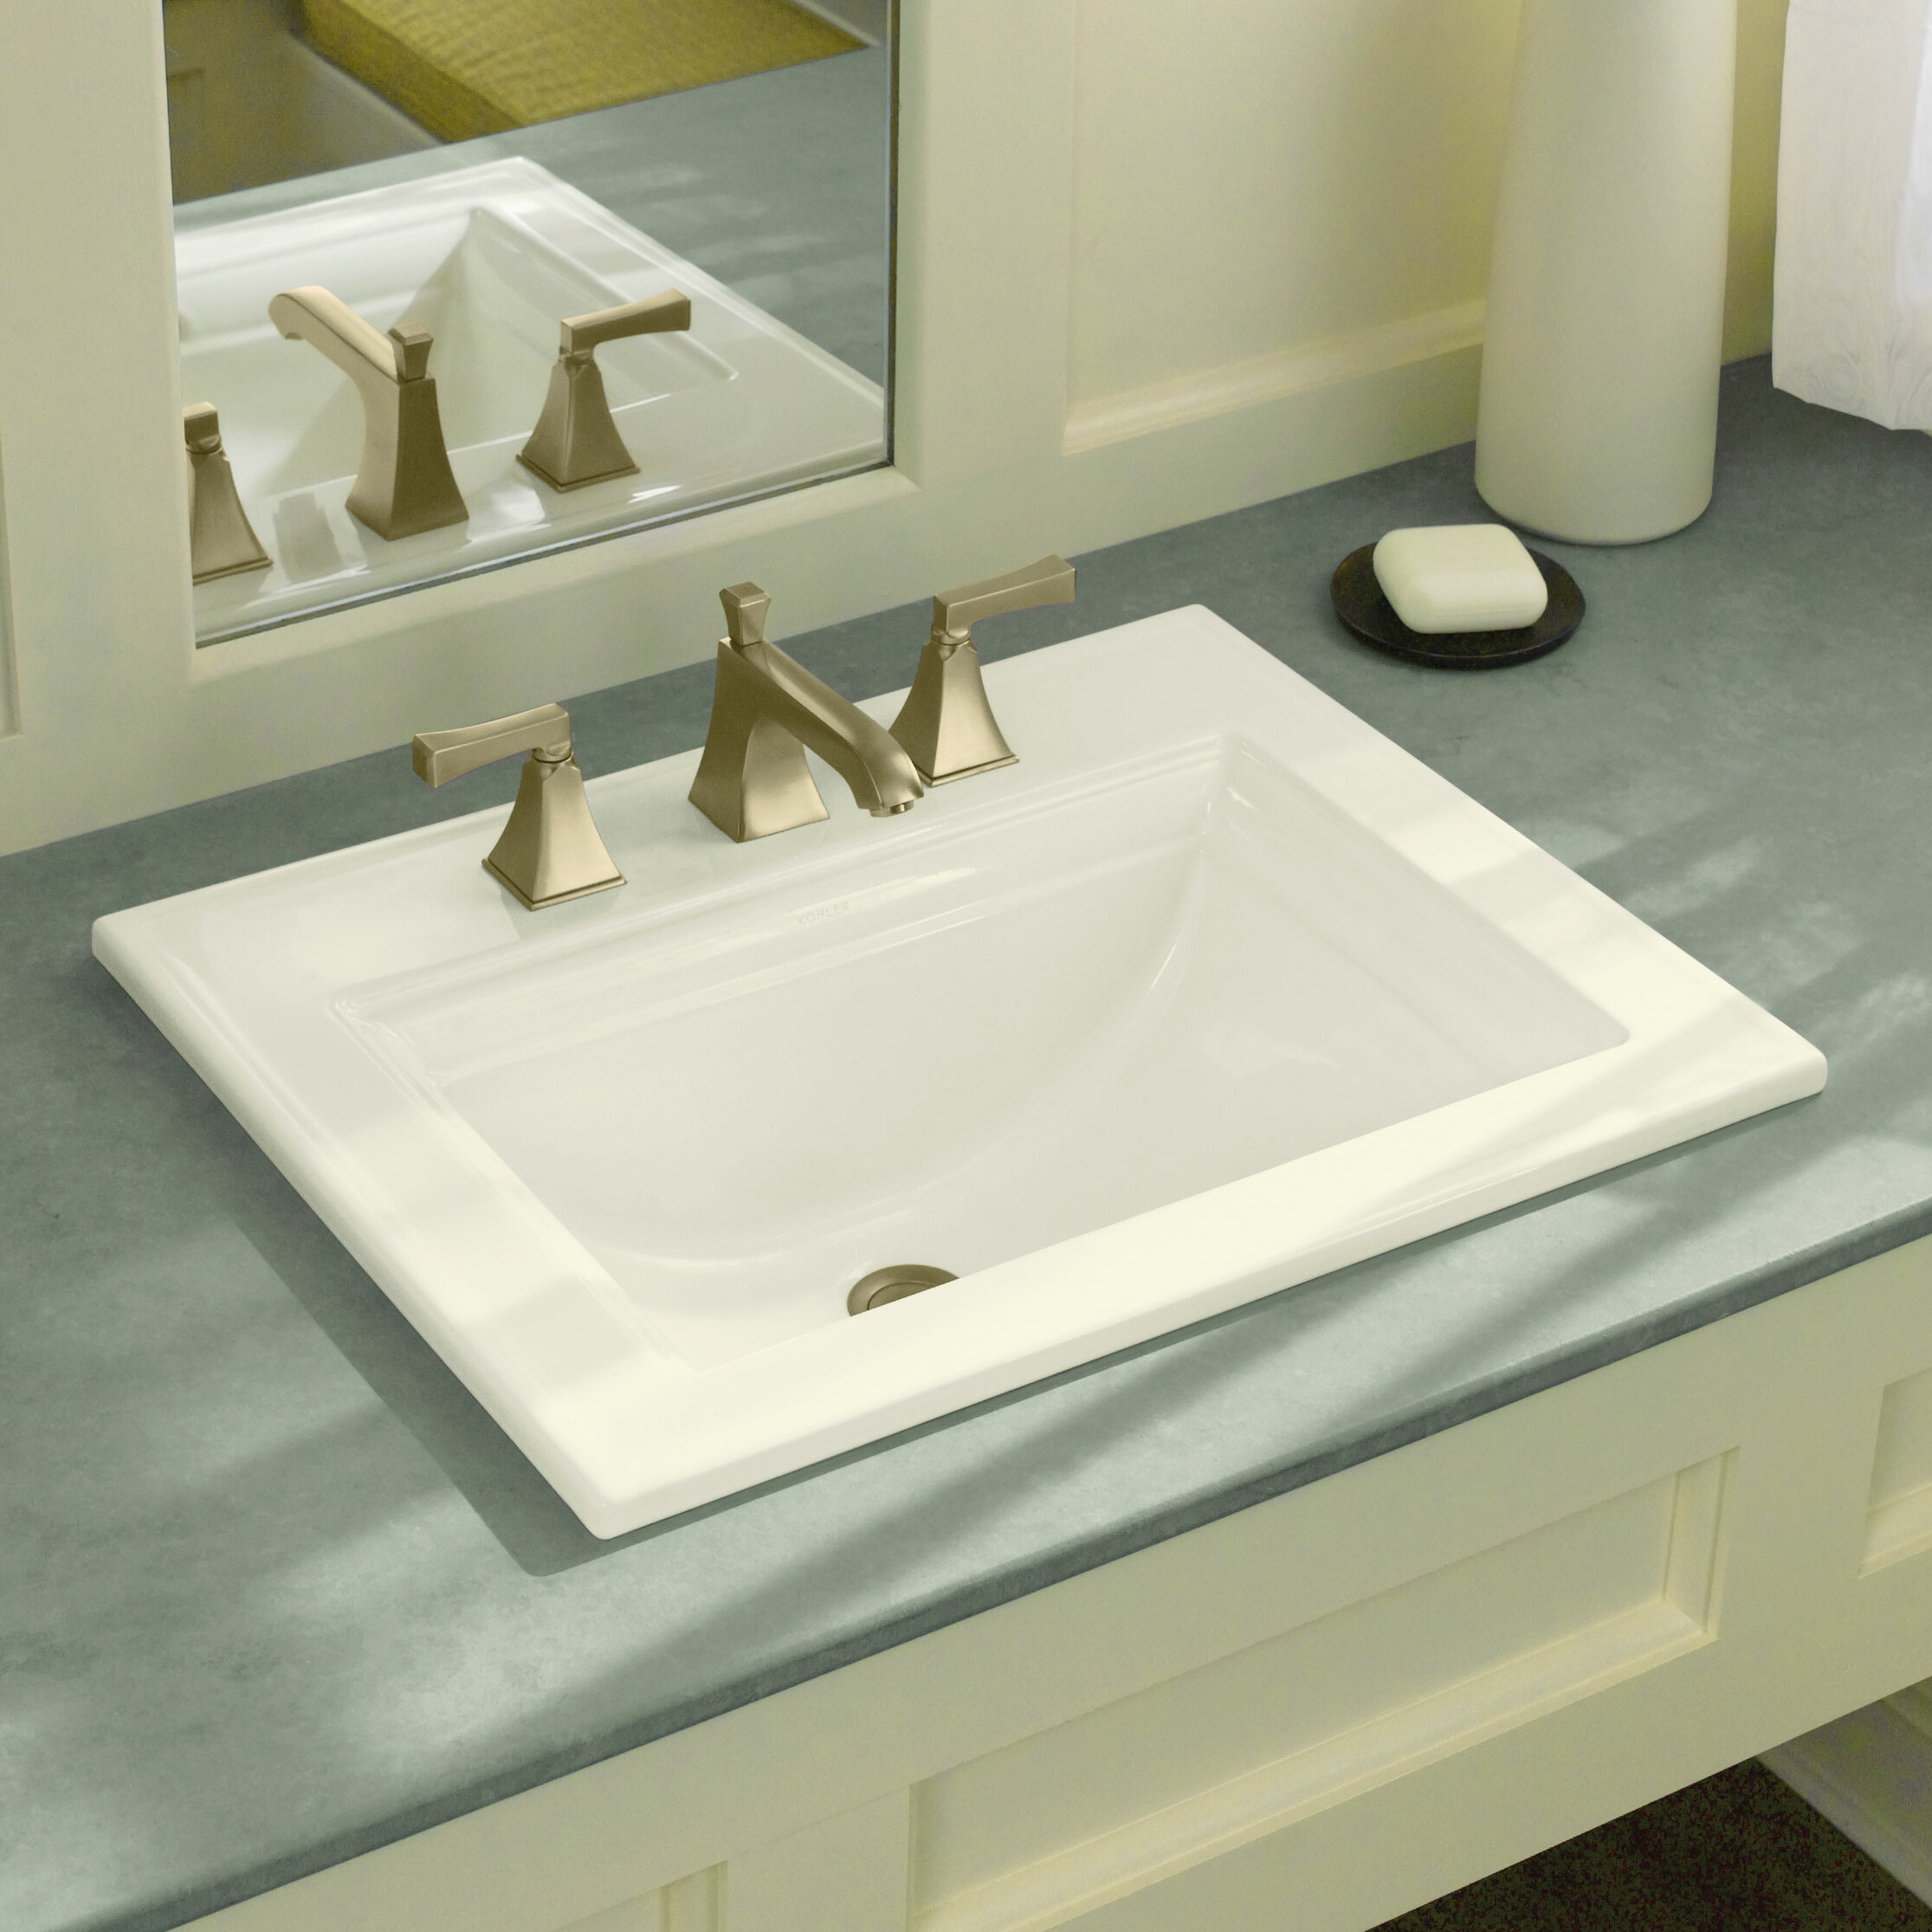 K 2337 8 0 96 Kohler Memoirs Ceramic Rectangular Drop In Bathroom Sink With Overflow Reviews Wayfair